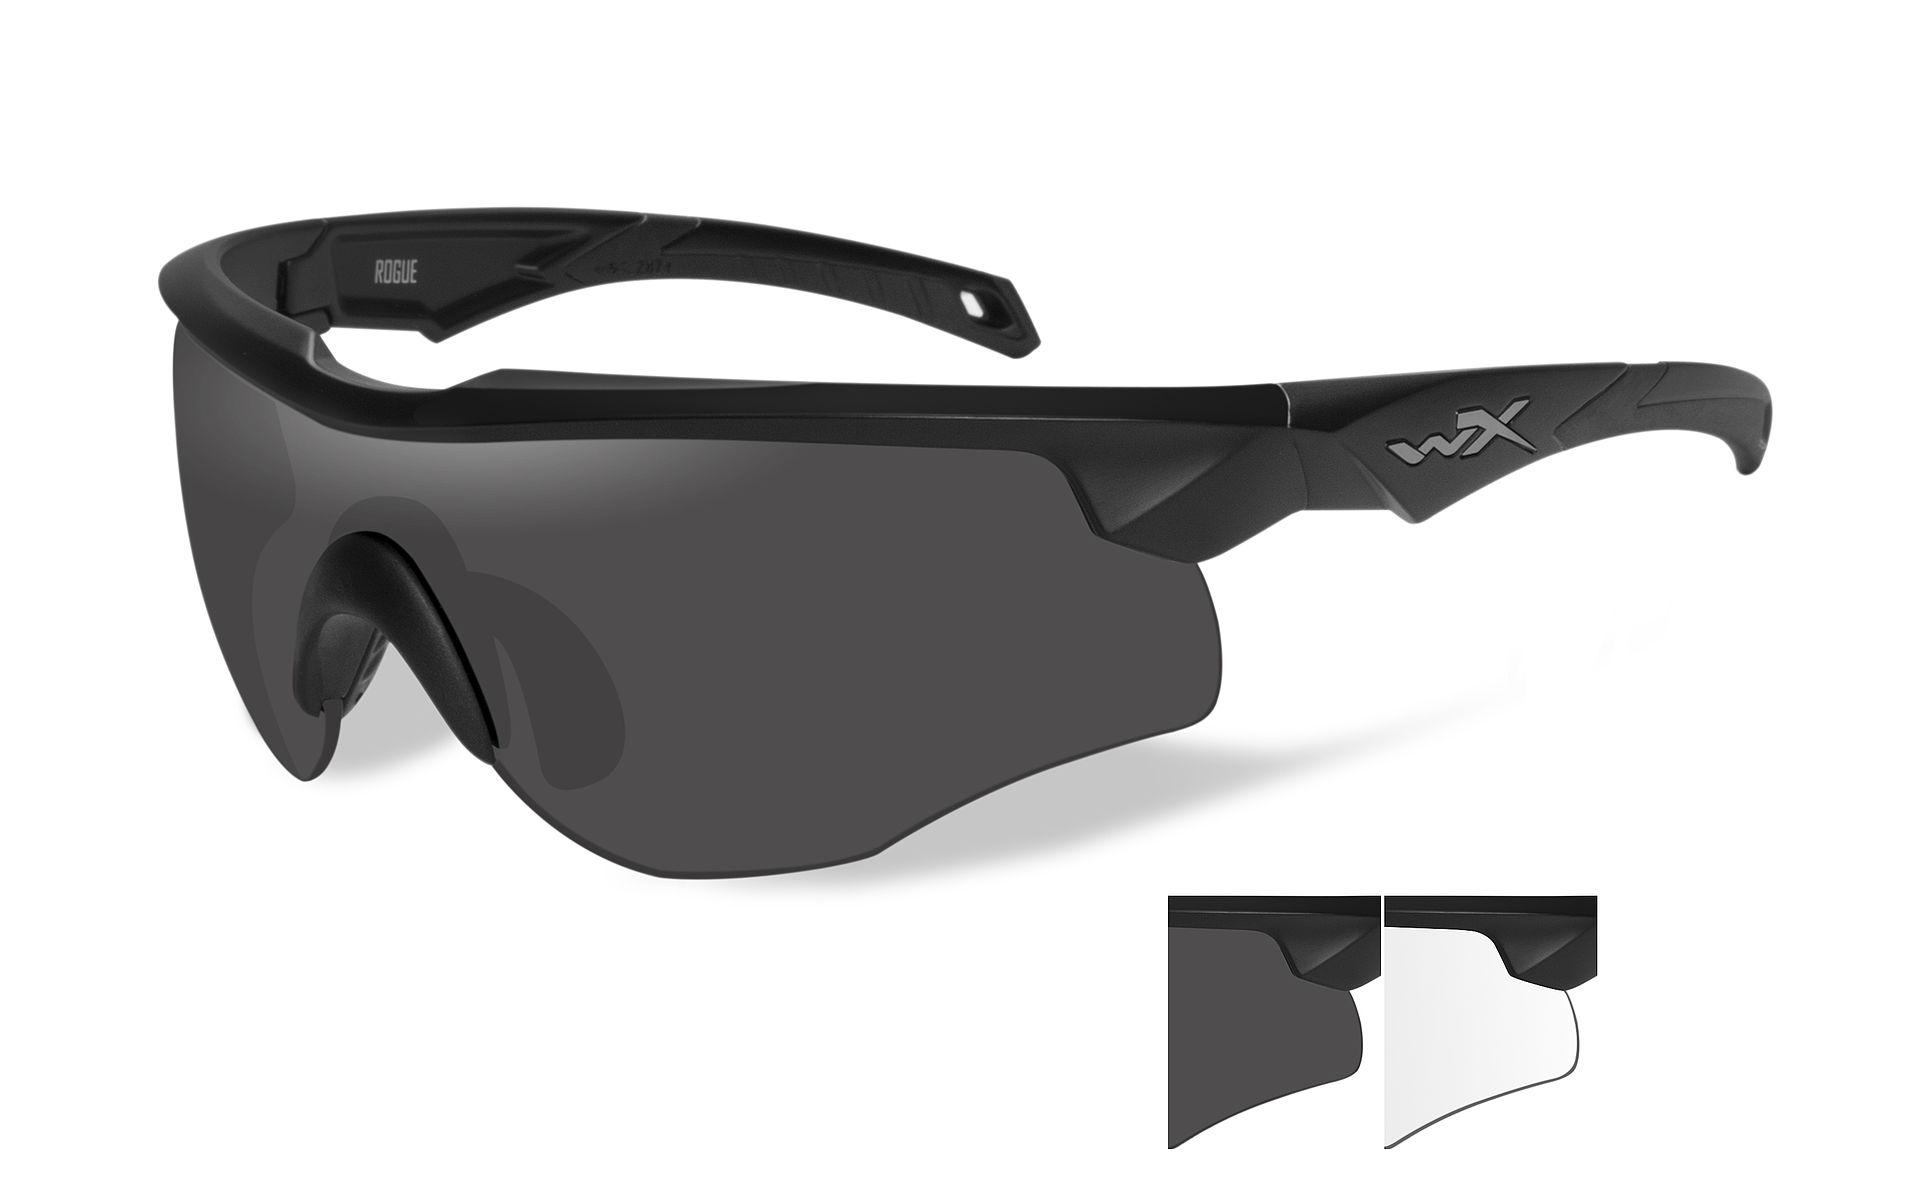 36c1100a514 ... WILEY X ROGUE Smoke grey + clear lens Matte black frame 109 EUR